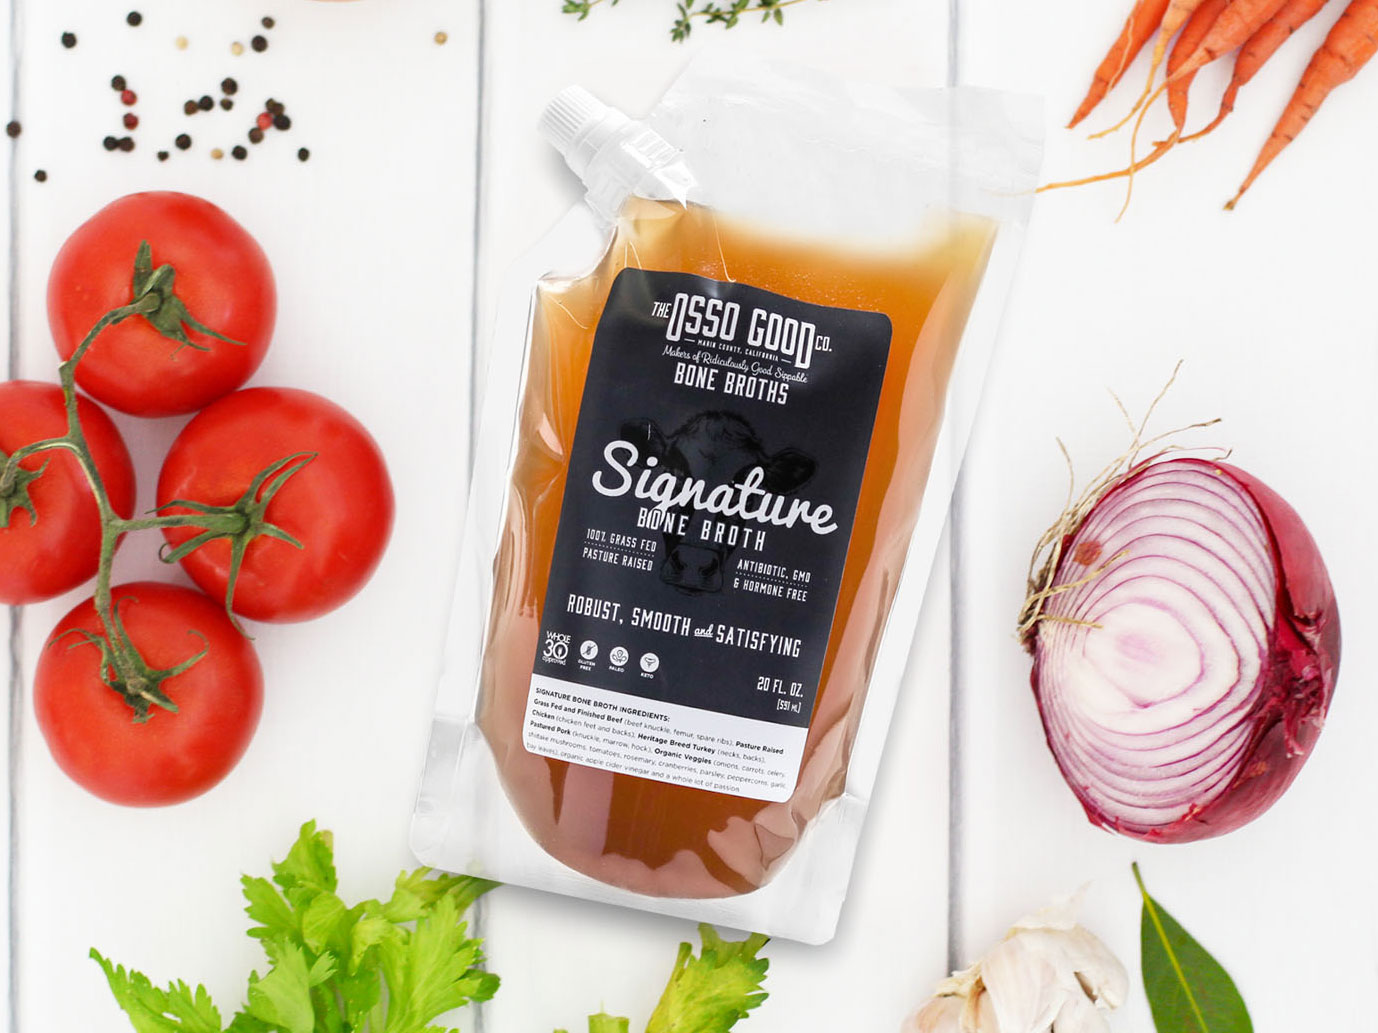 Osso Good Signature Bone Broth